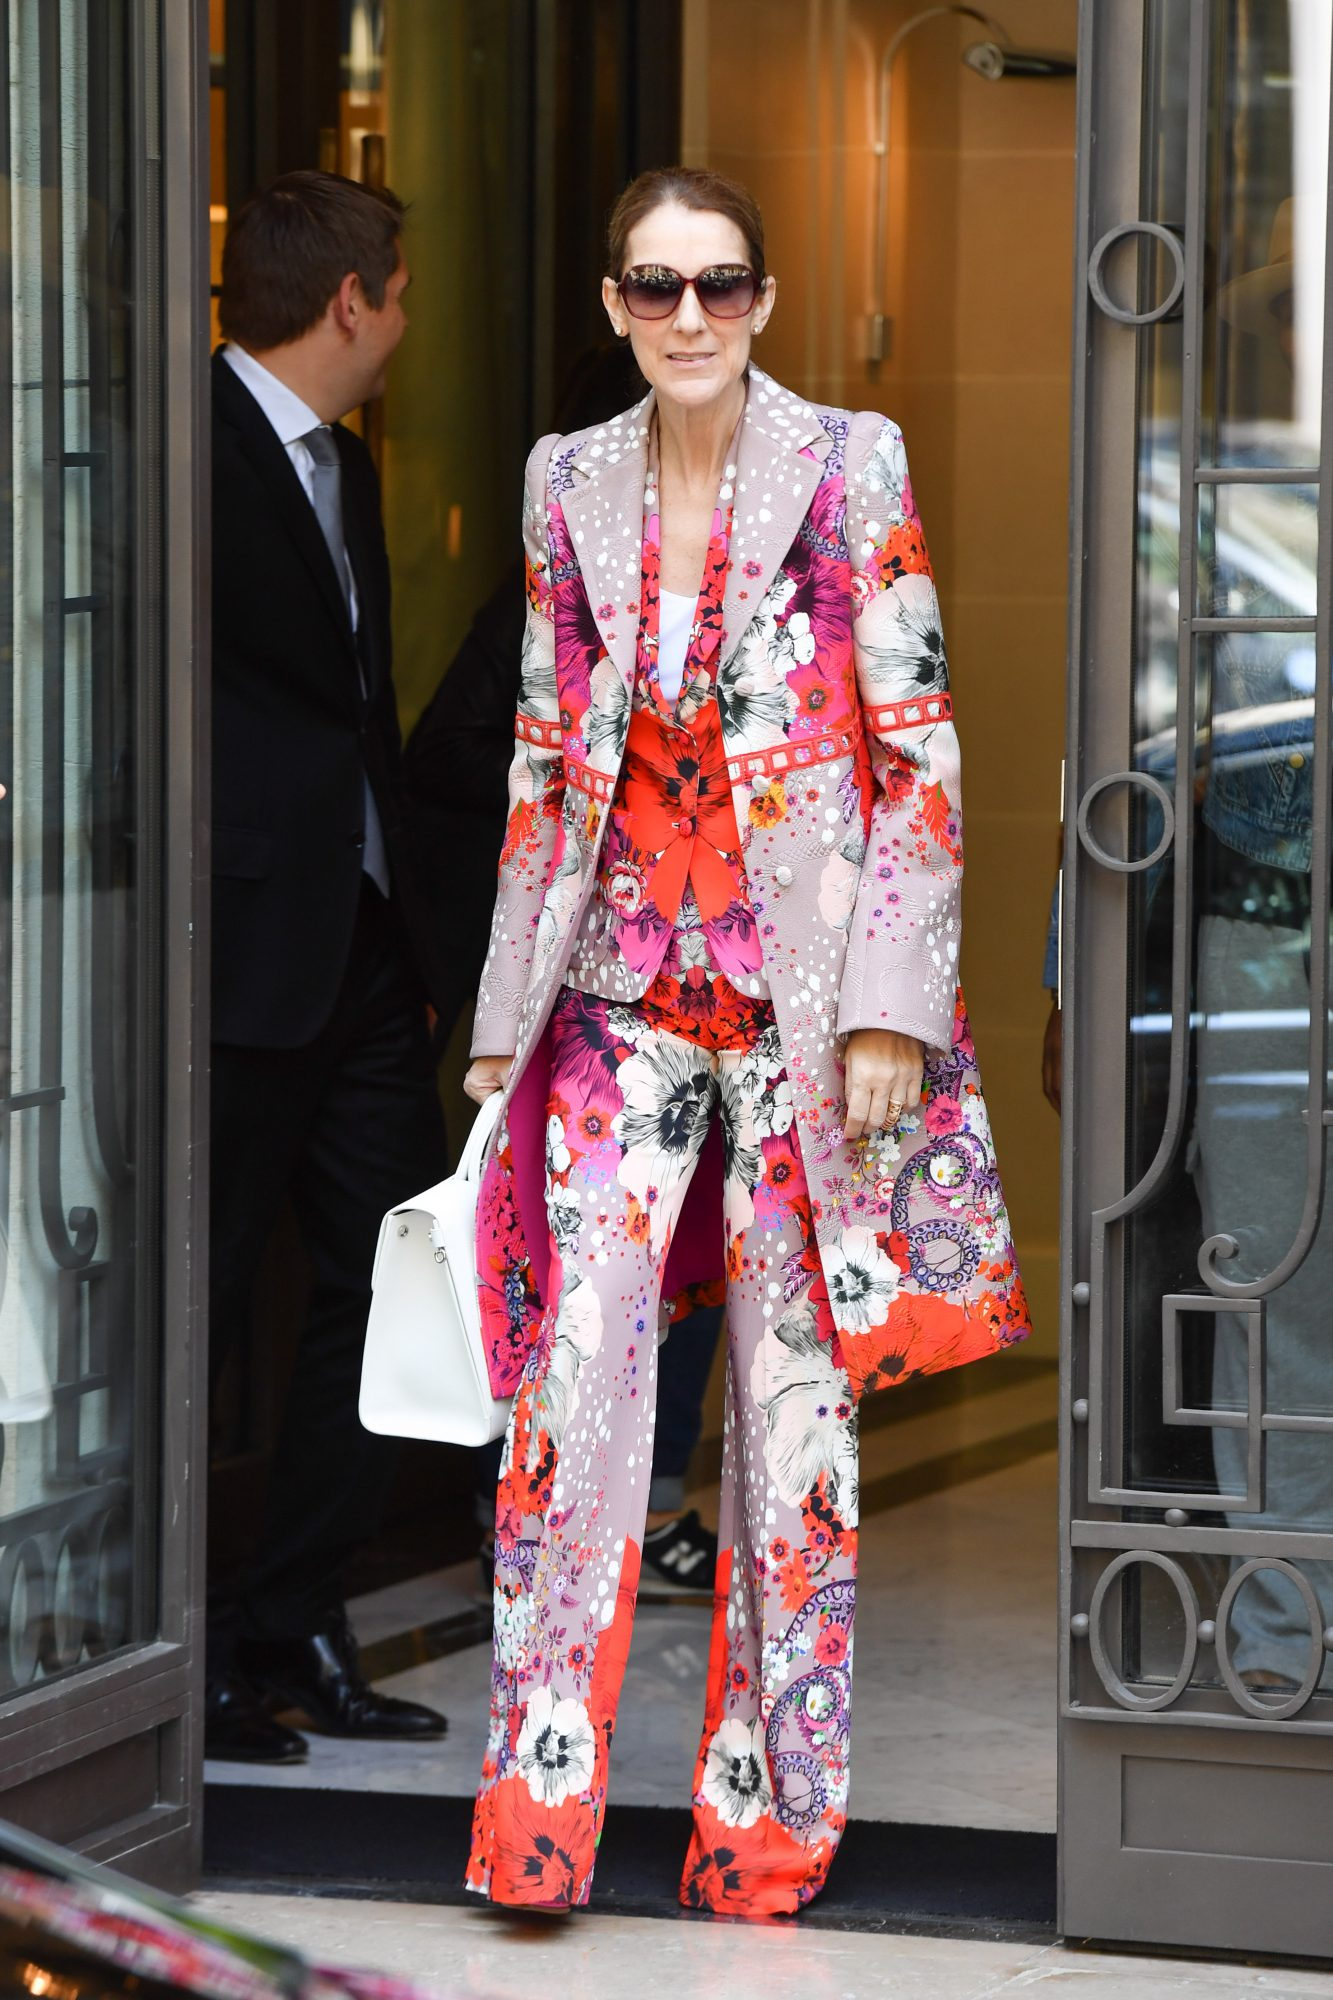 IN HEAD-TO-TOE FLORALS